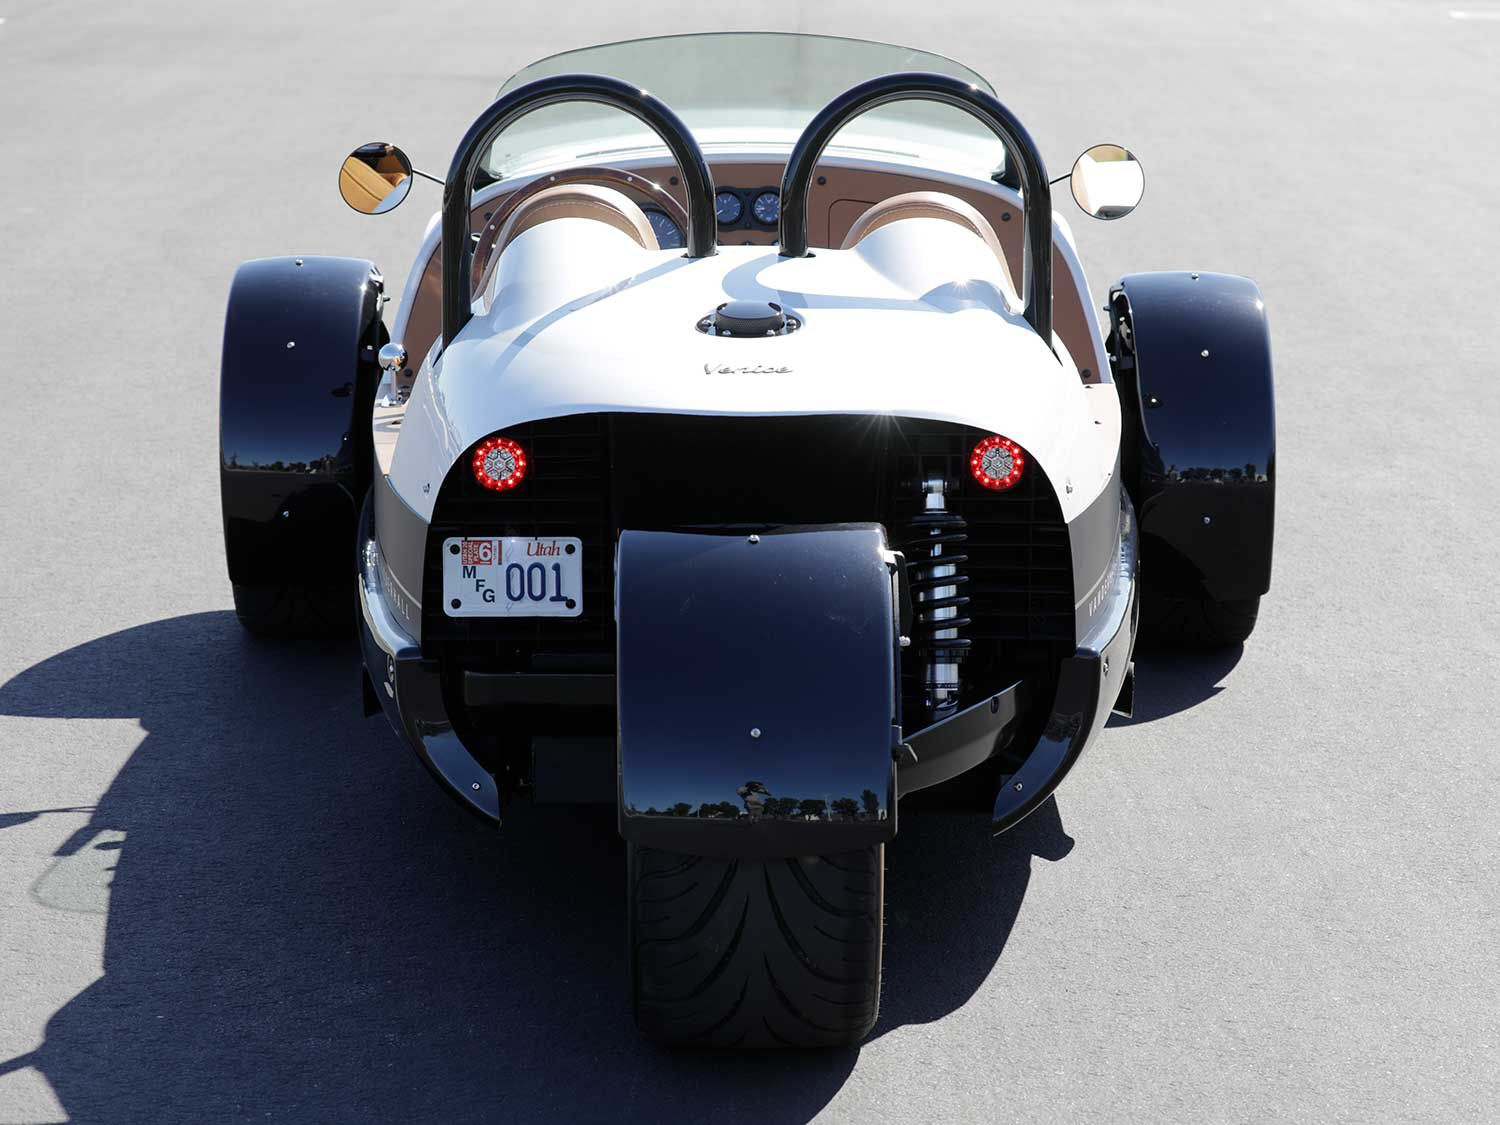 As opposed to other autocycles, the Venice GT is front-wheel drive with a 75/25 weight distribution.